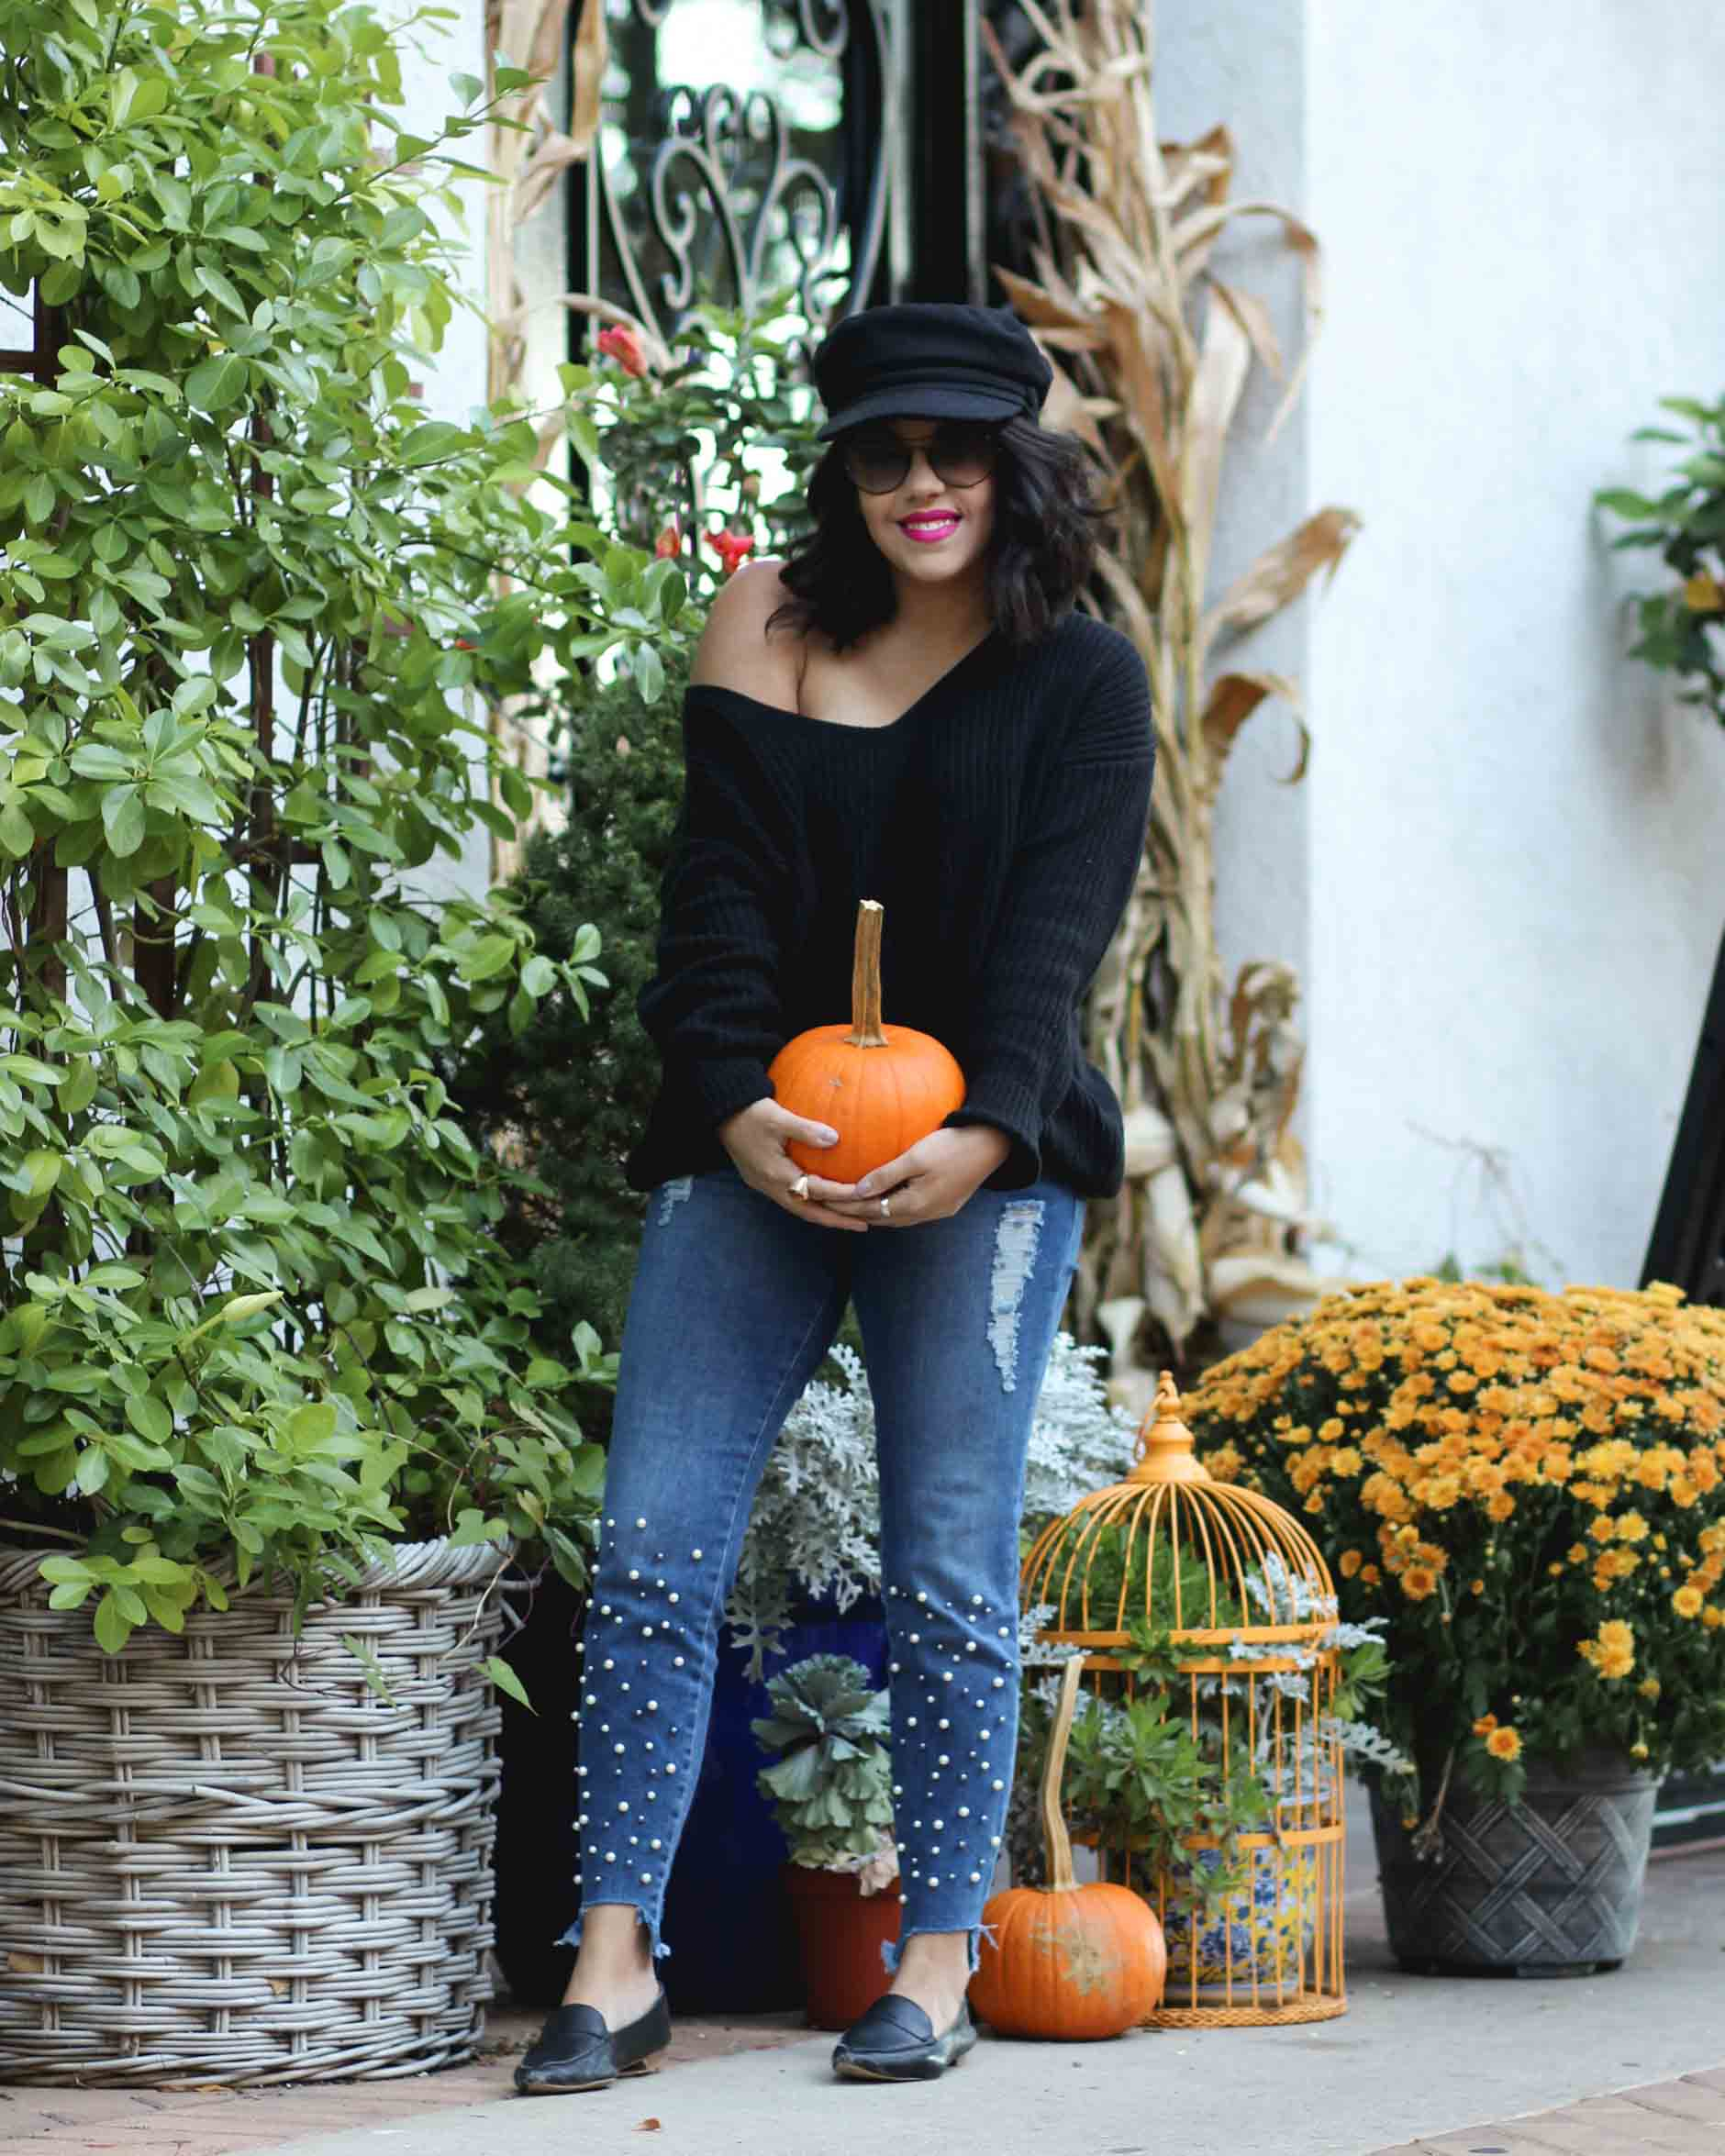 ab0faf3e871 lifestyle blogger naty michele wearing pearl jeans holding a pumpkin